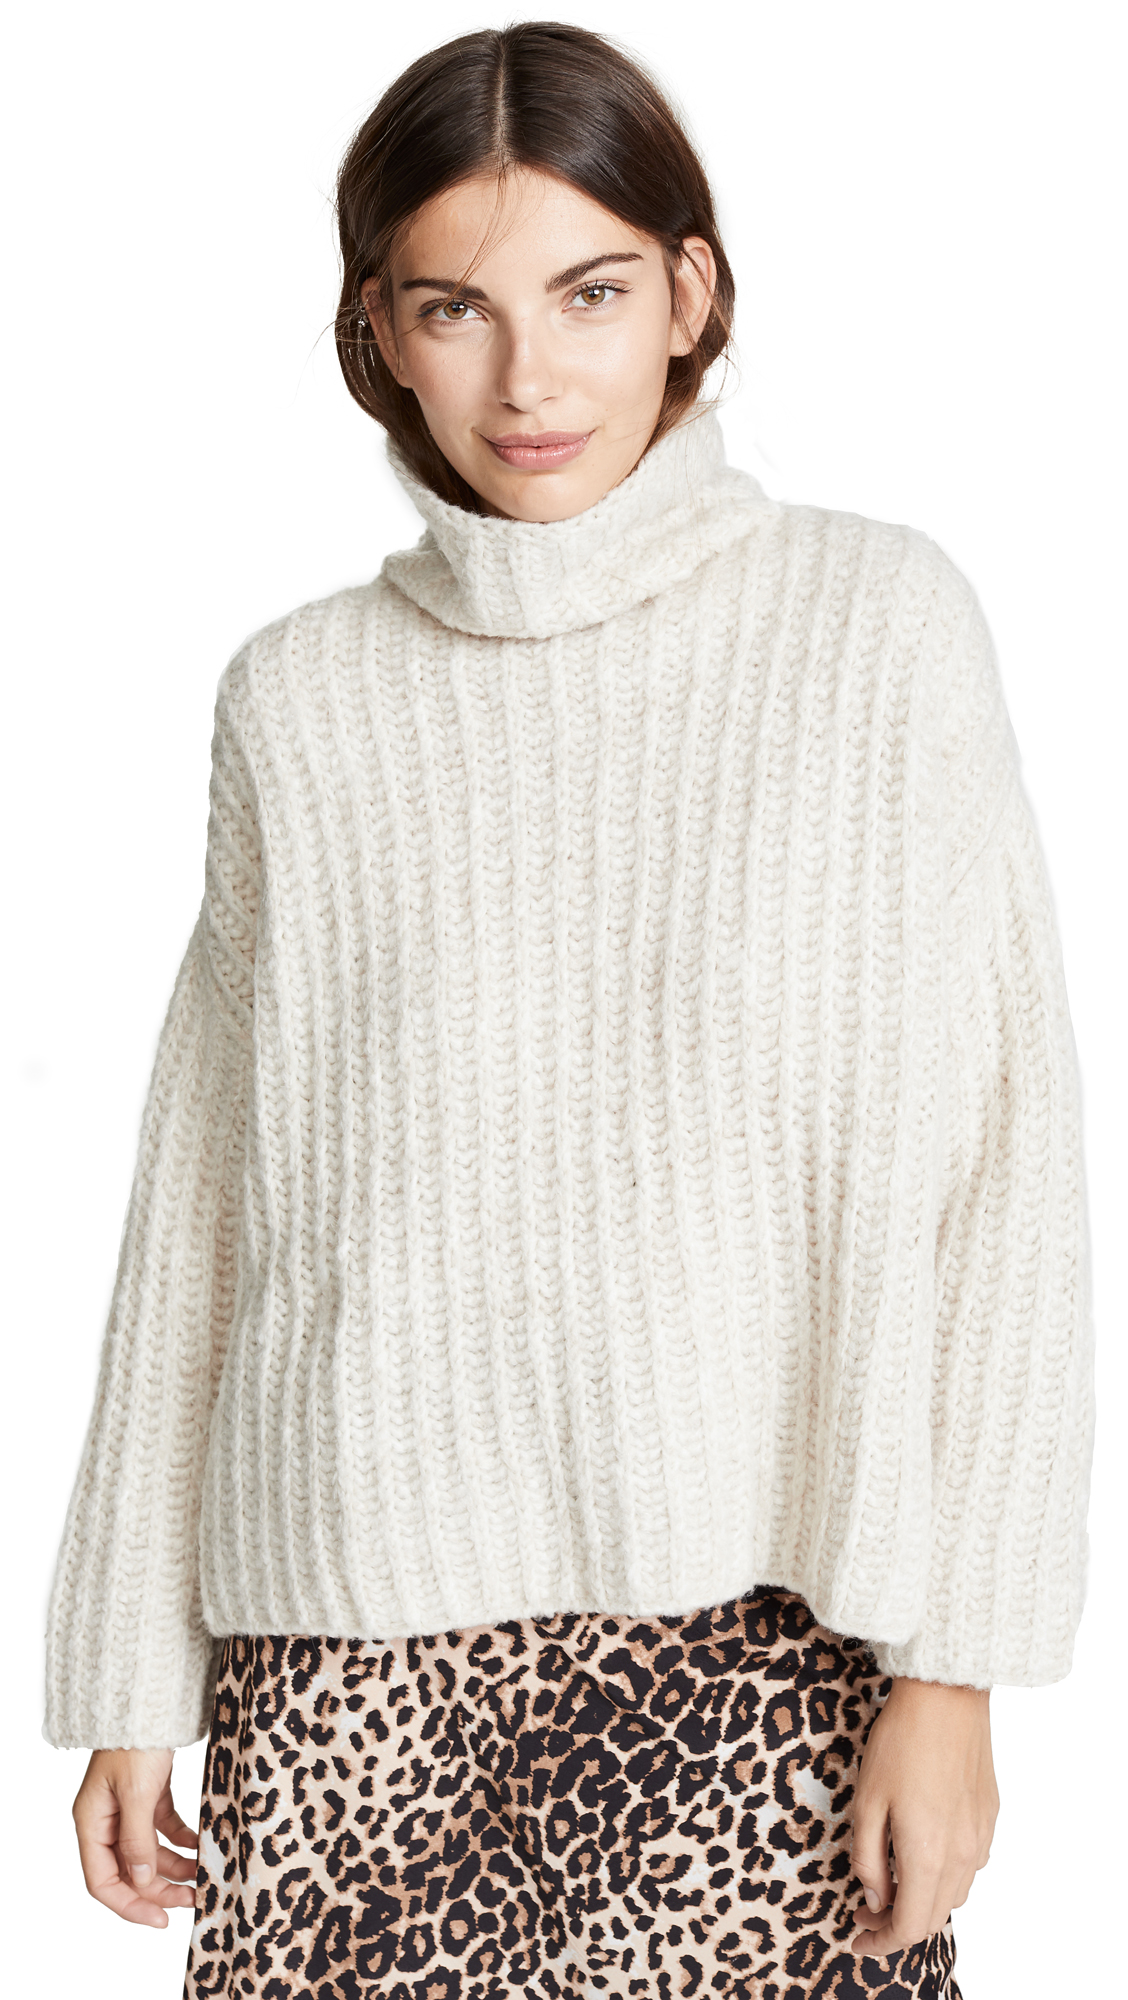 Free People Fluffy Fox Sweater - Pearl